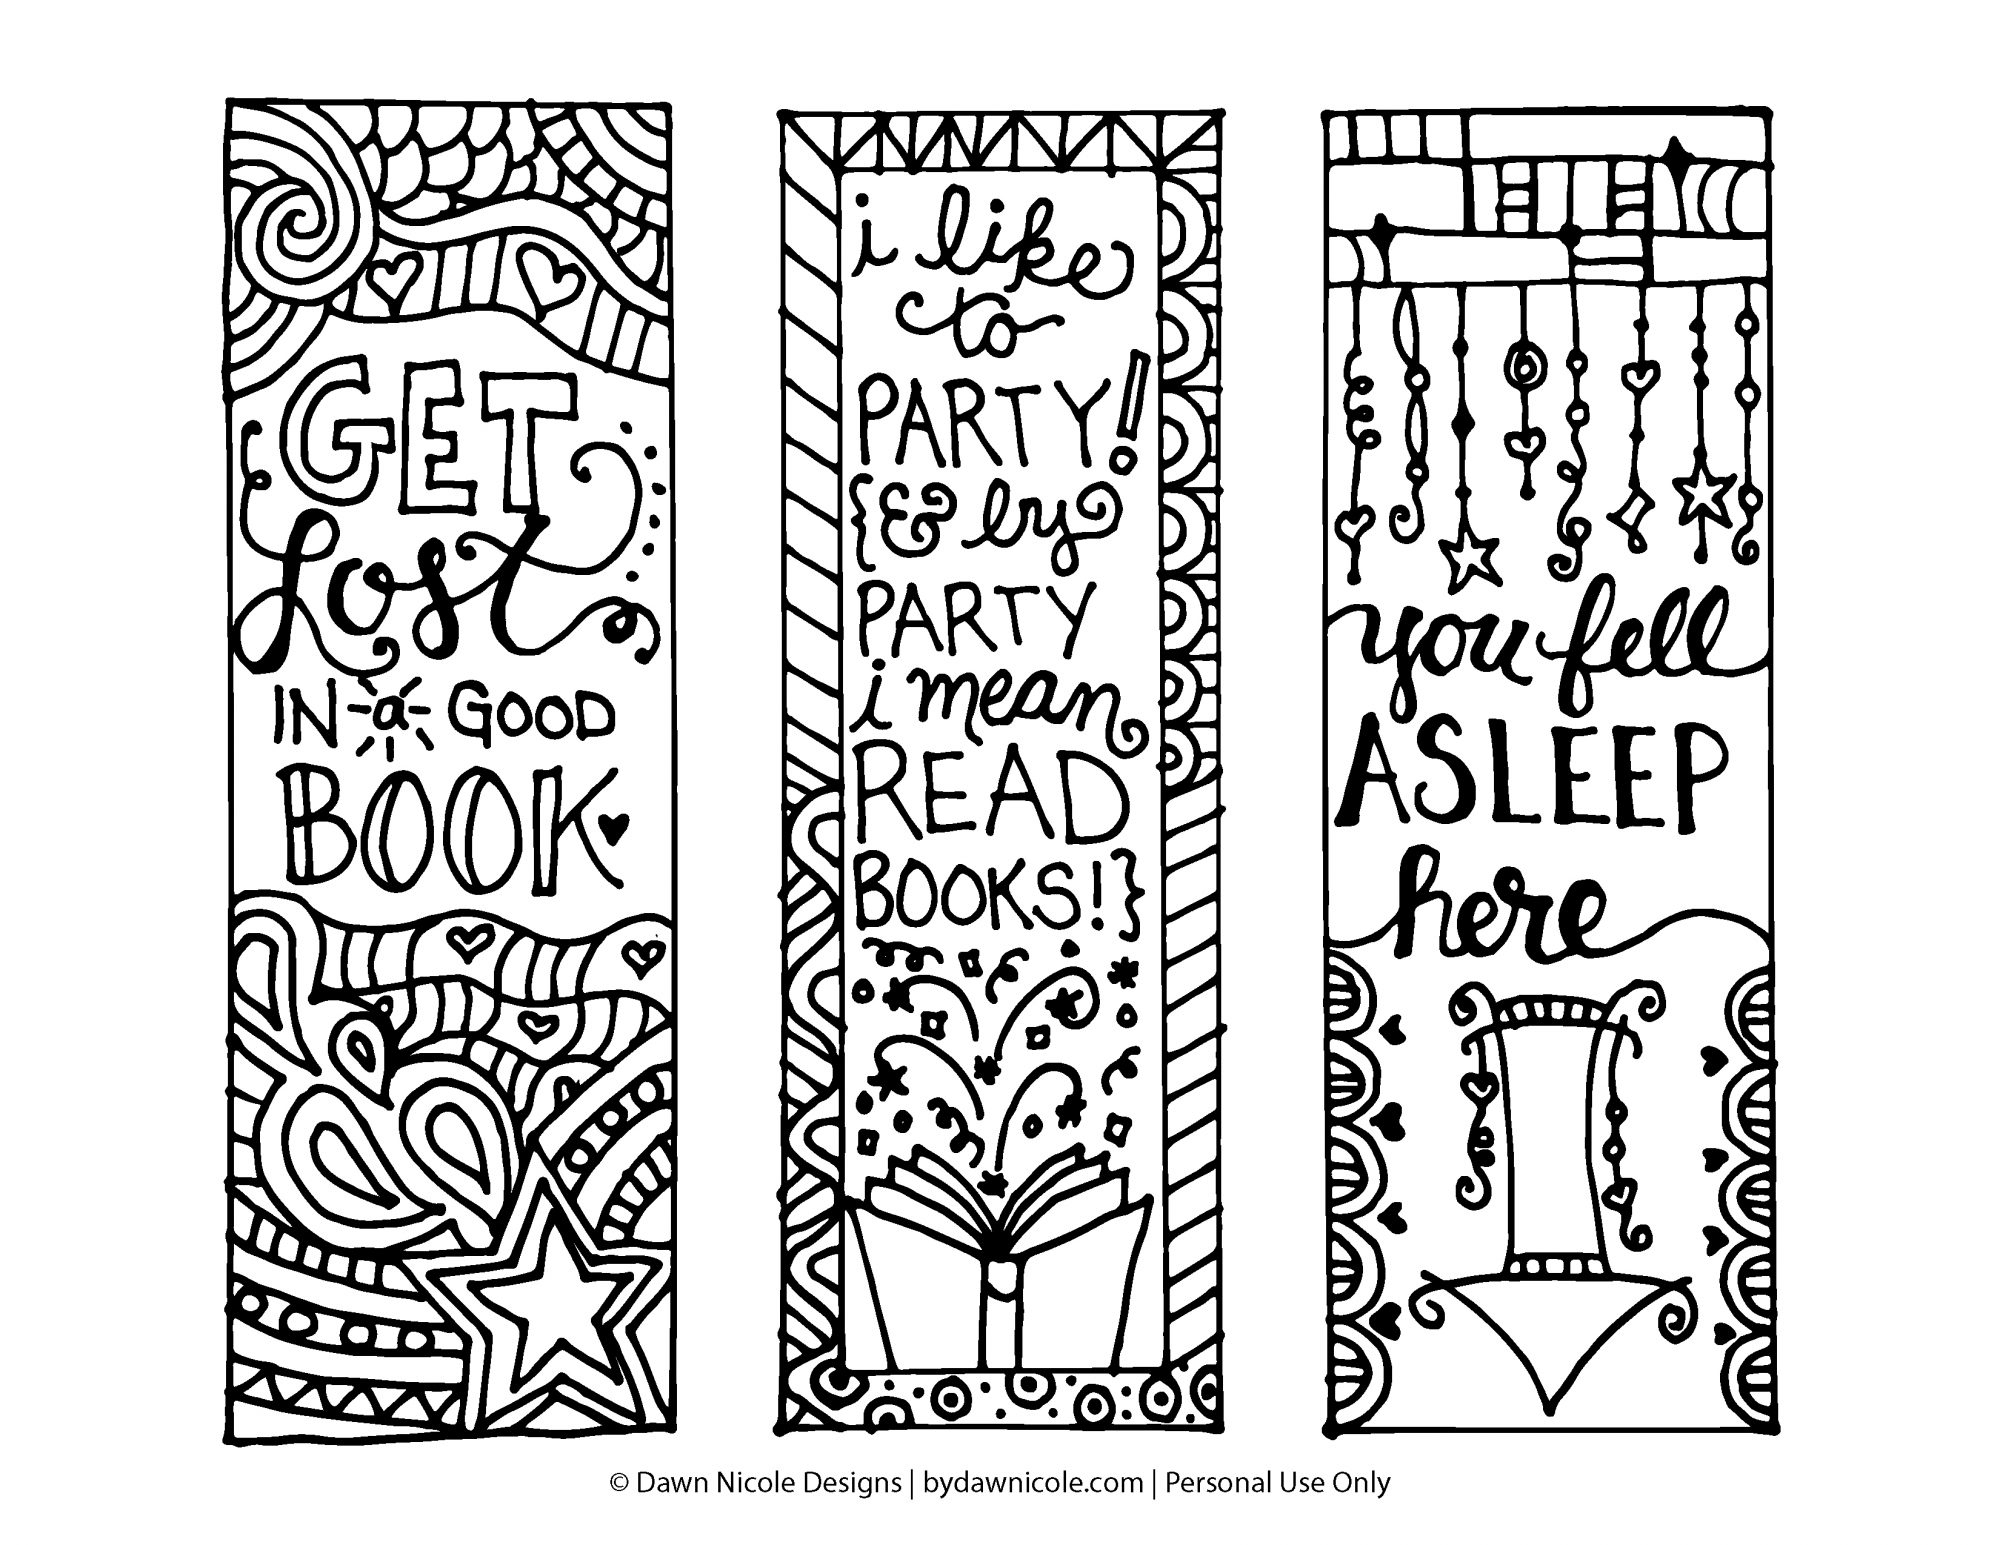 Free Printable Coloring Page Bookmarks   Dawn Nicole Designs® - Free Printable Sports Bookmarks